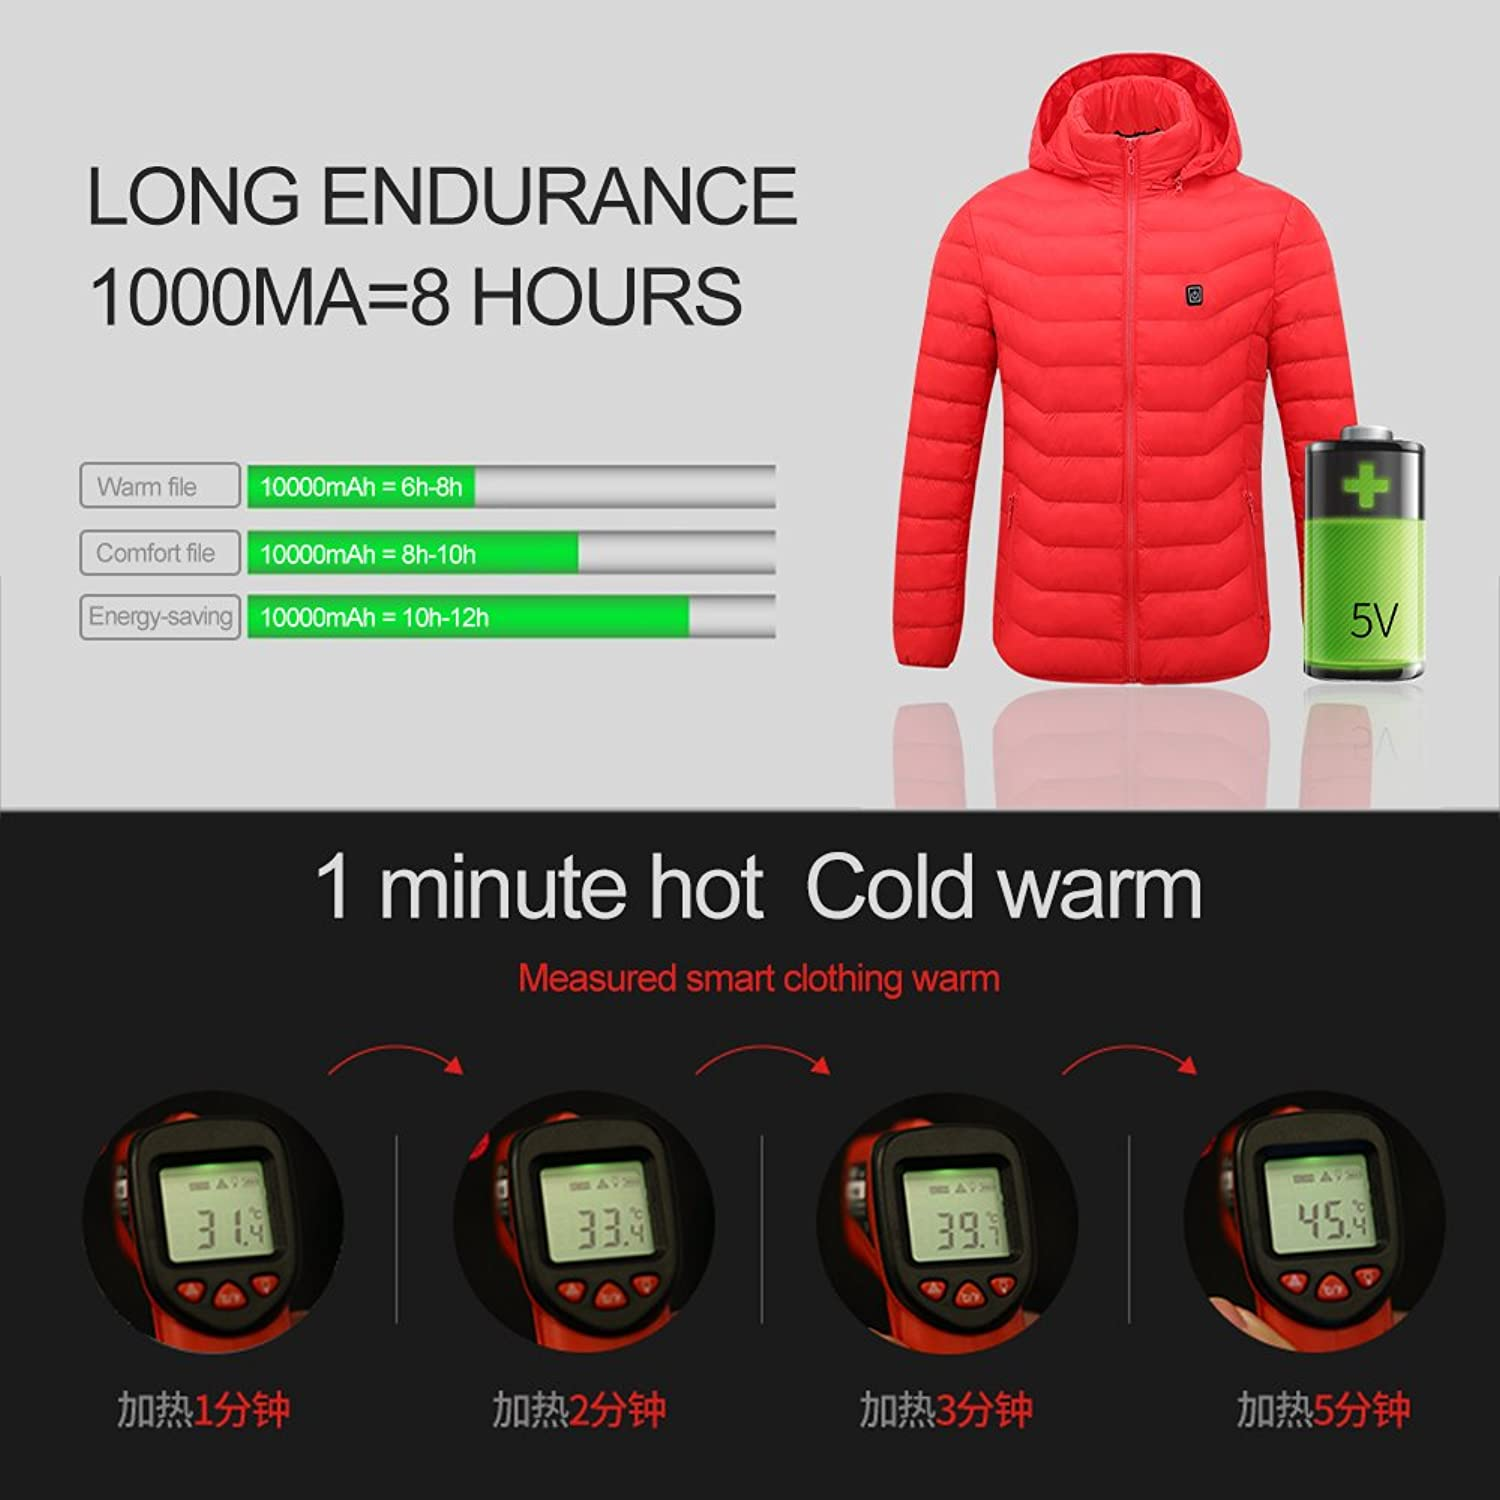 Amazon.com: NON ROCK Electric Heating Clothing Jacket Powered by Battery Power Bank,USB Interface,5V: Clothing